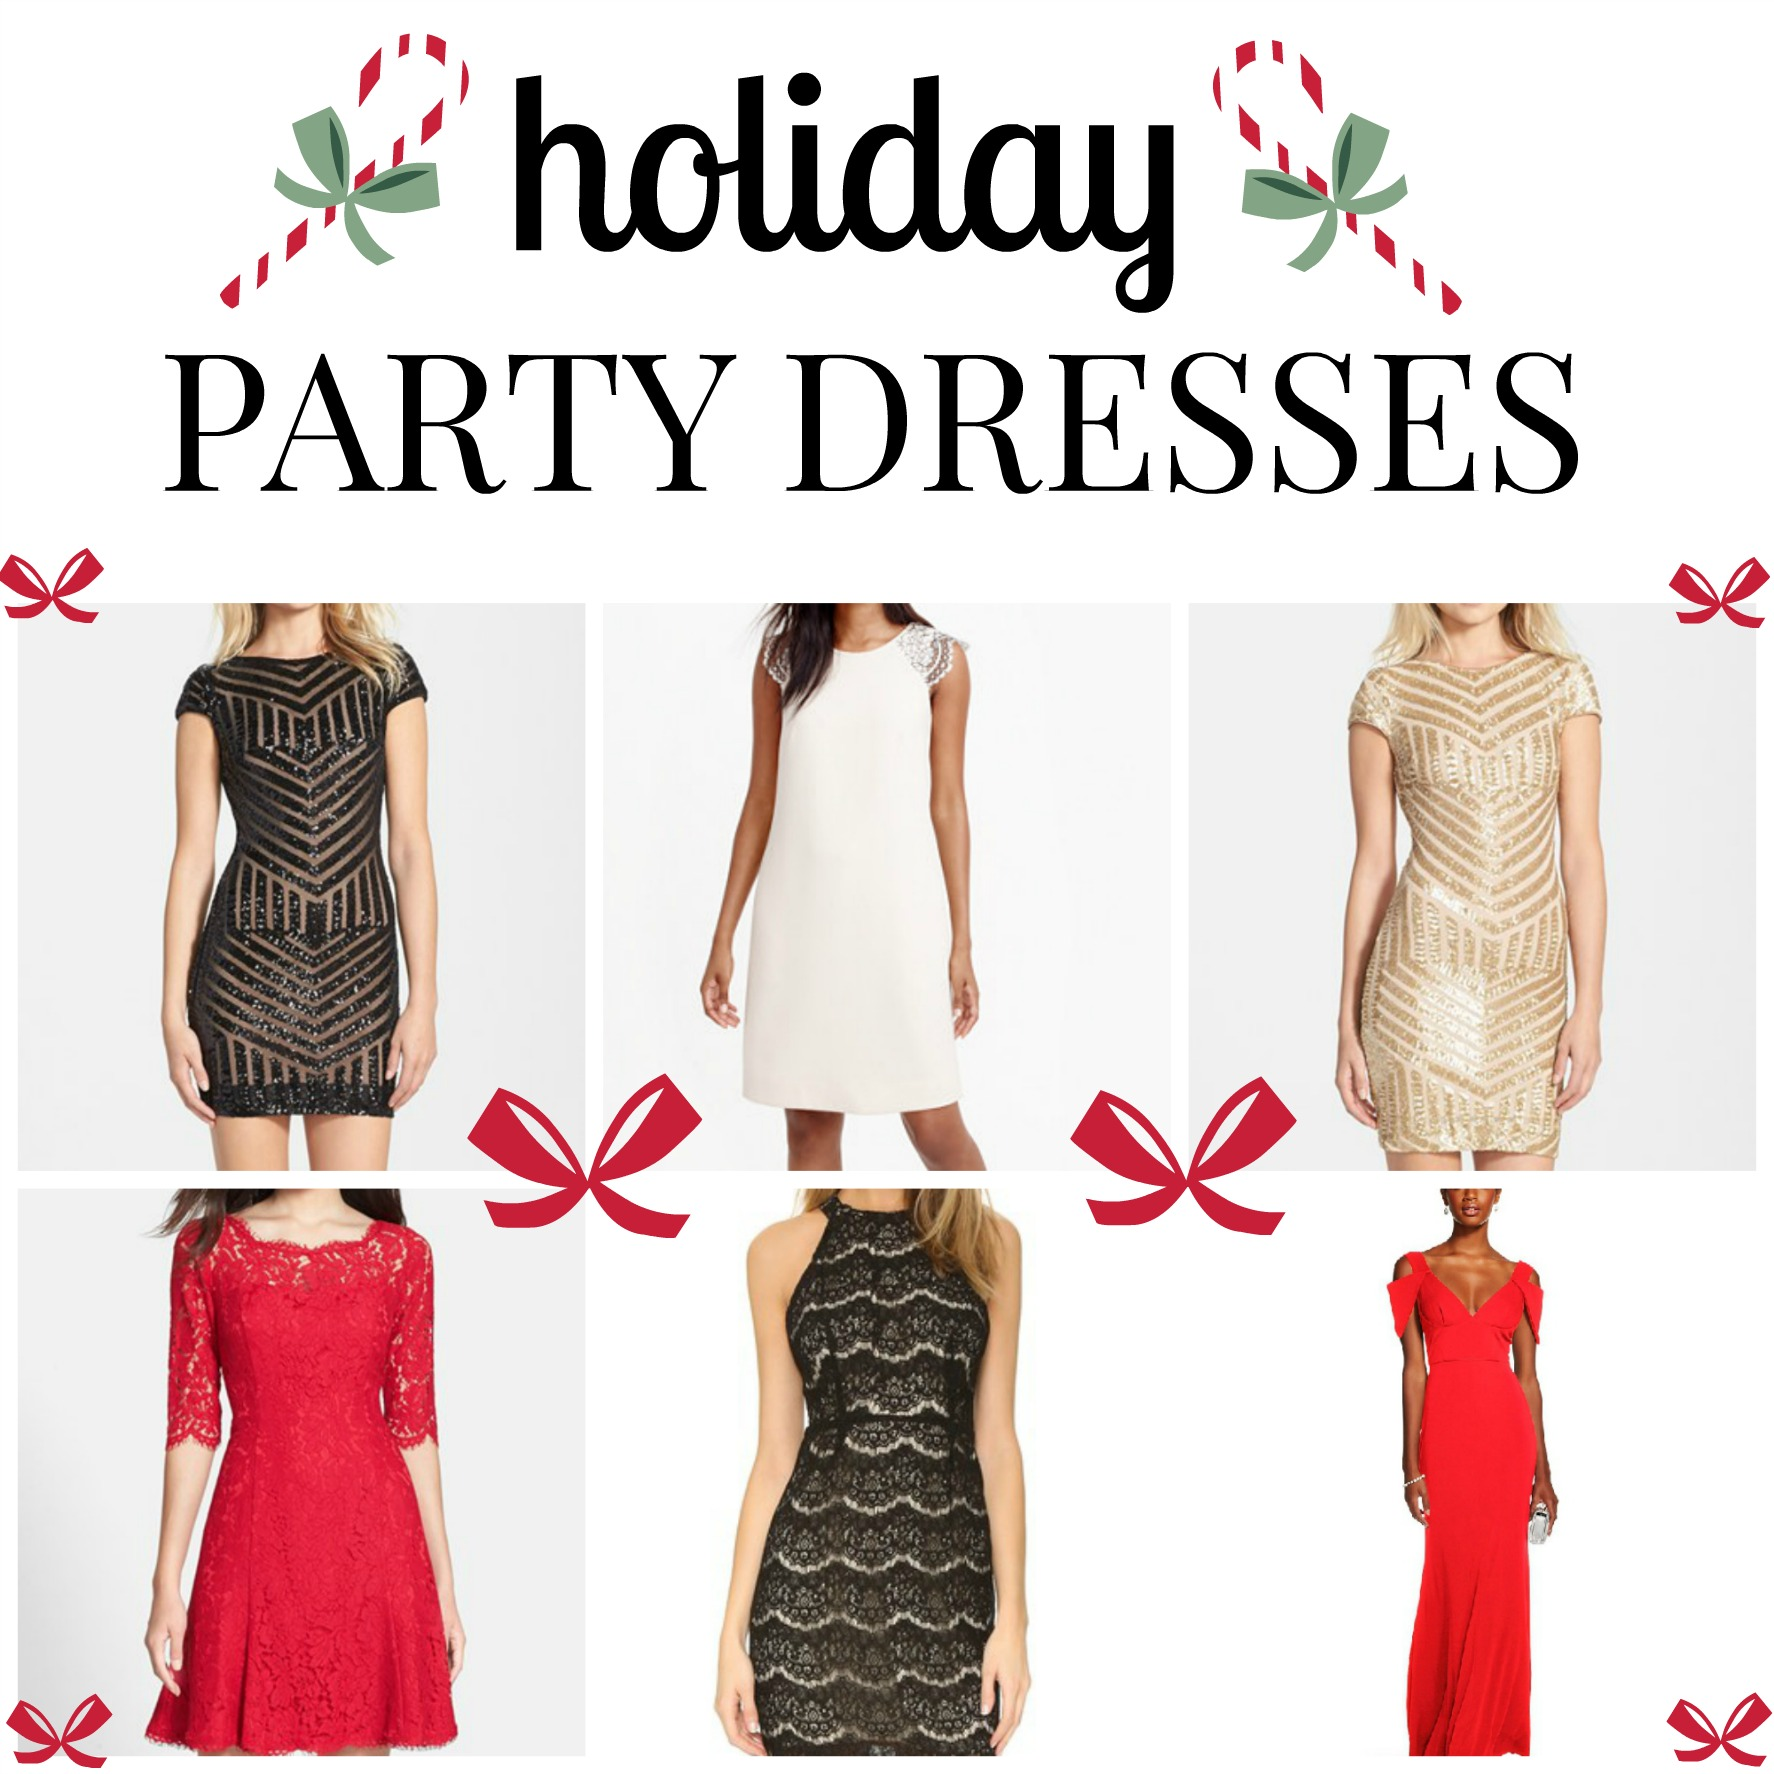 Black Friday Deals: Holiday Party Dresses - Airelle Snyder